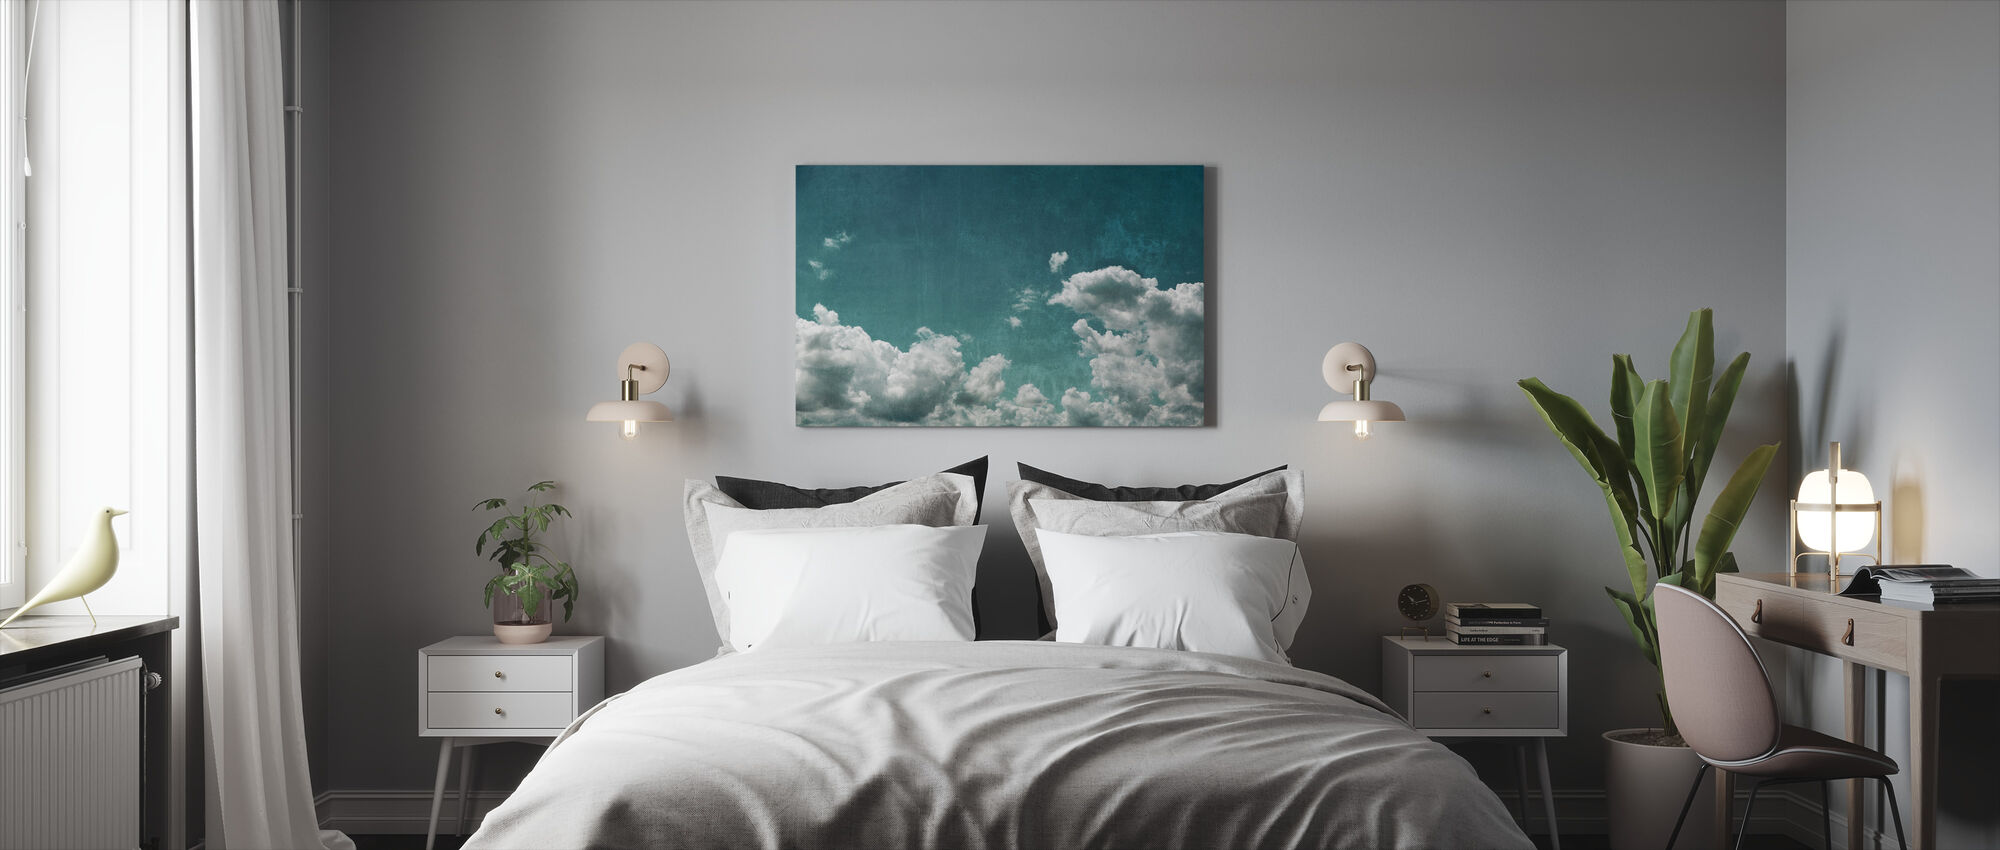 Textured Cloudy Sky - Canvas print - Bedroom